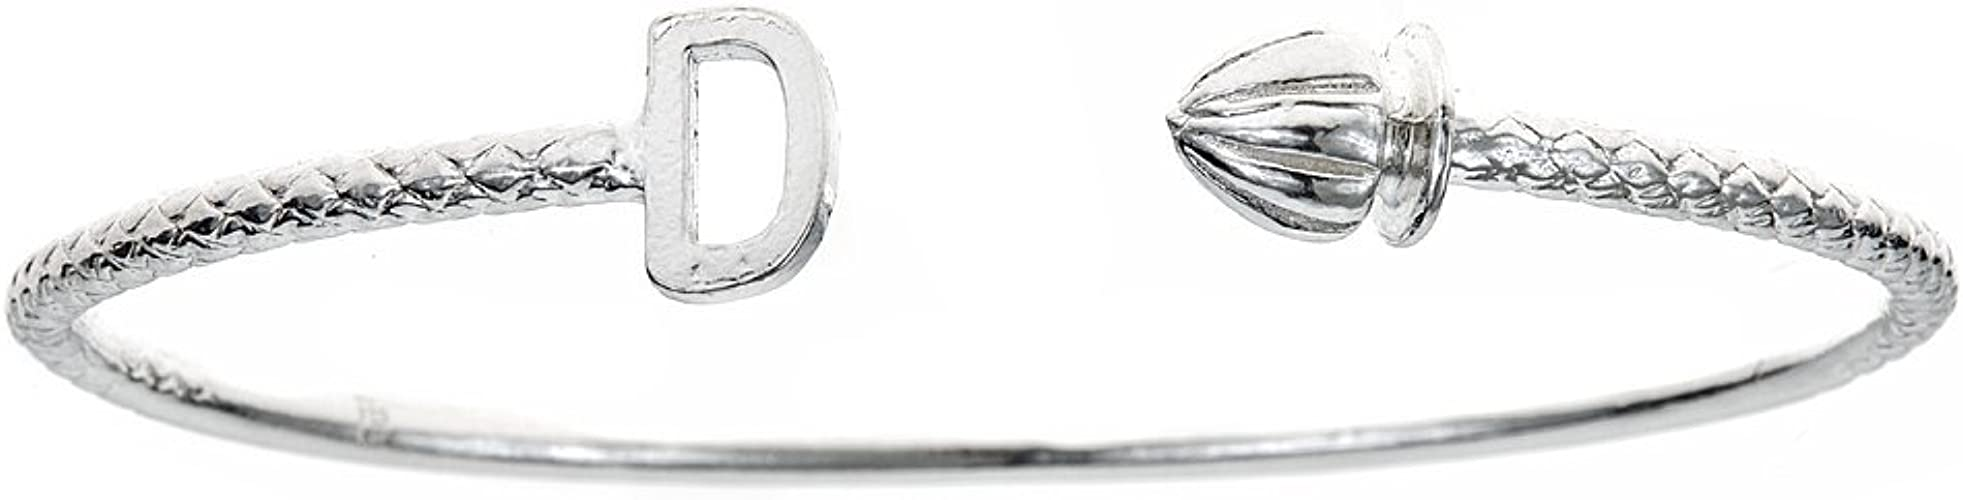 """Fist .925 Sterling Silver West Indian Bangle 7.5/"""" MADE IN USA"""